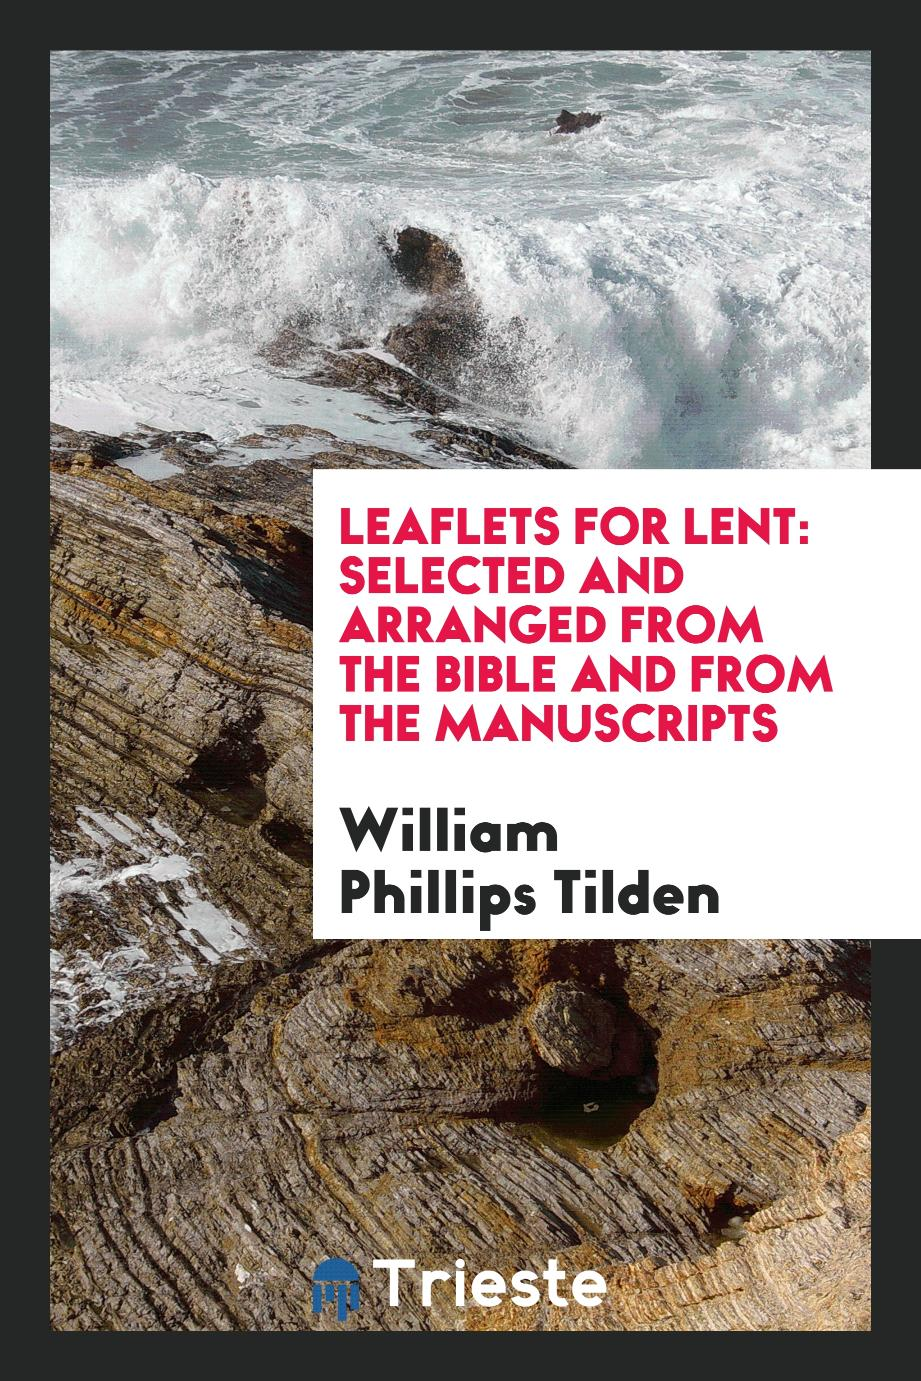 Leaflets for Lent: Selected and Arranged from the Bible and from the Manuscripts